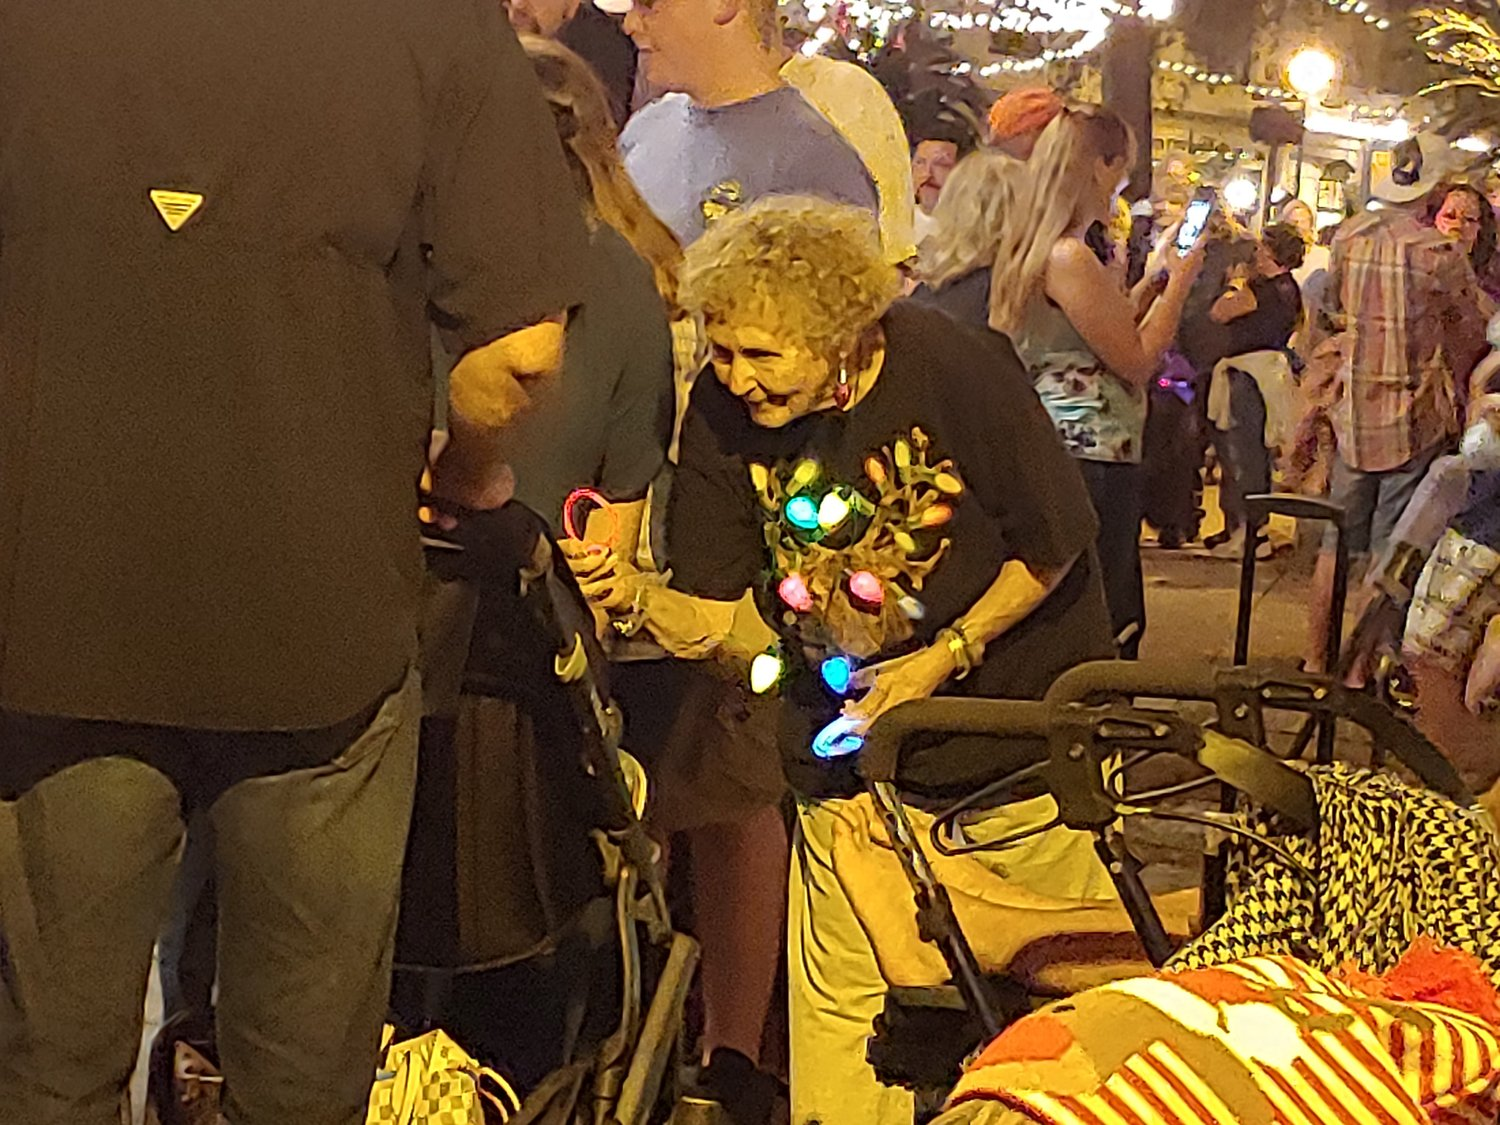 A woman hands out light-up toy jewelry to children as they walk through the plaza.